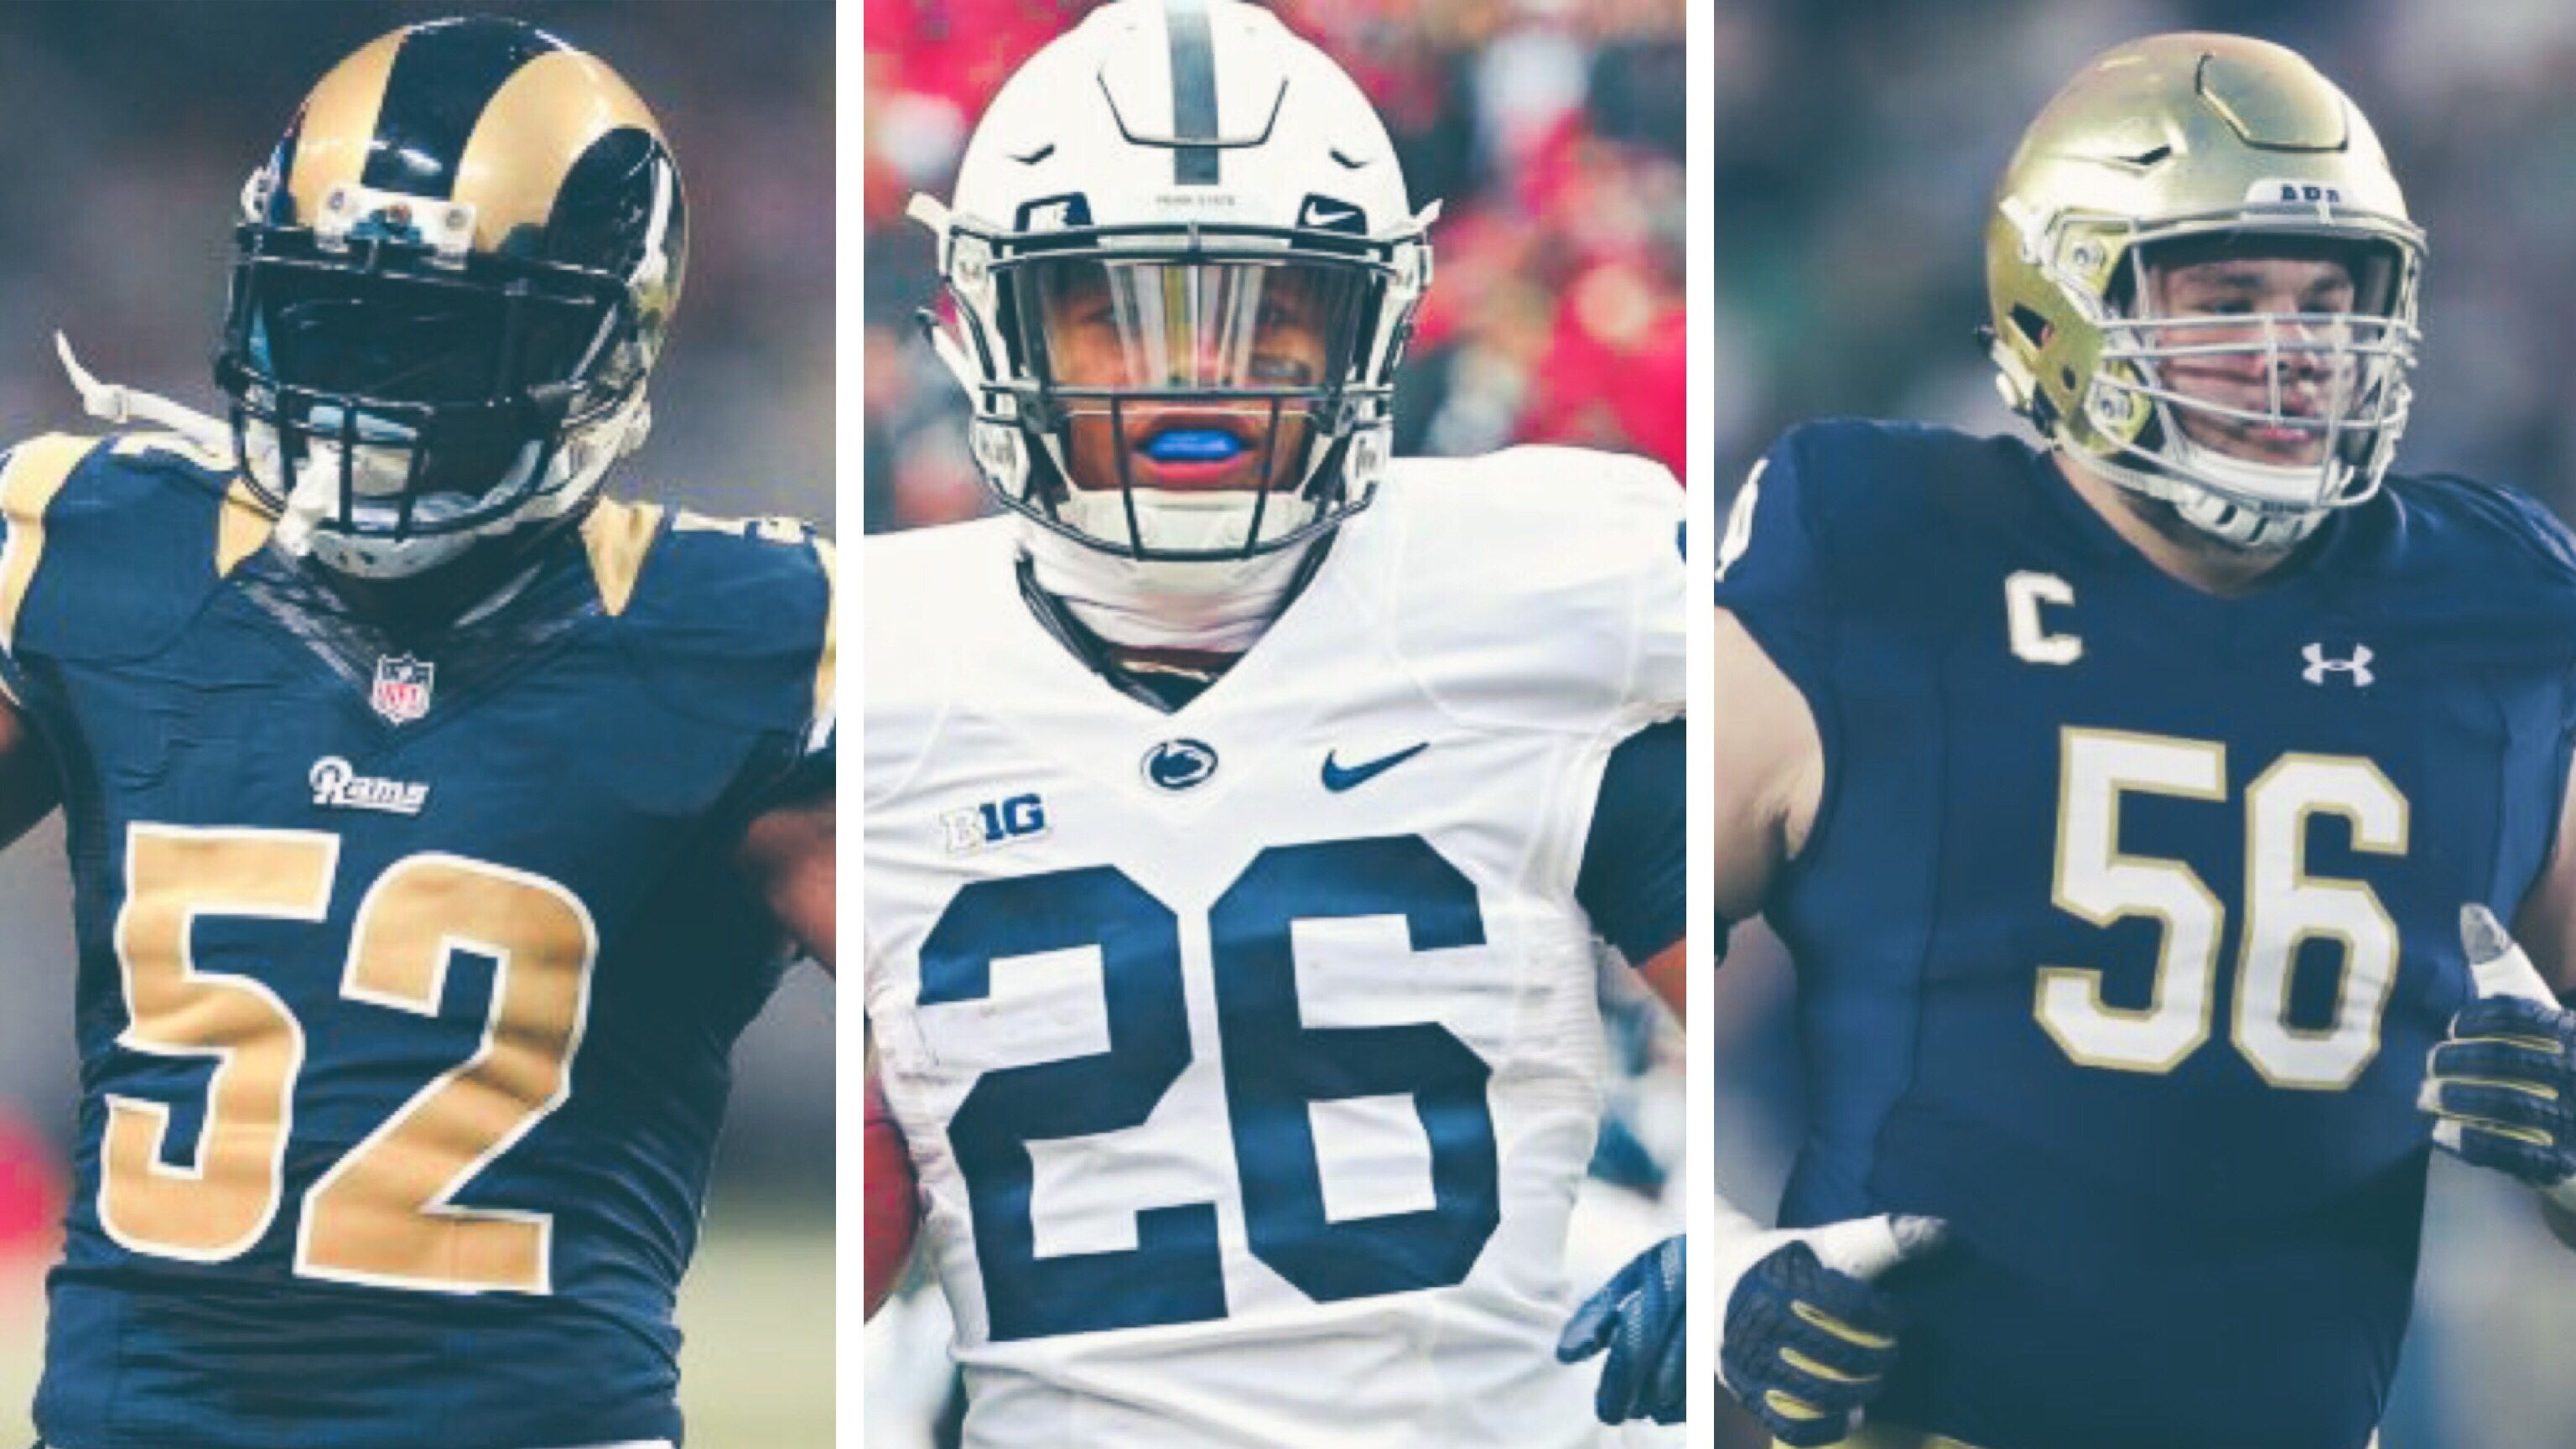 Alec Ogletree Georgia giants drafting quenton nelson, saquon barkley a lock for